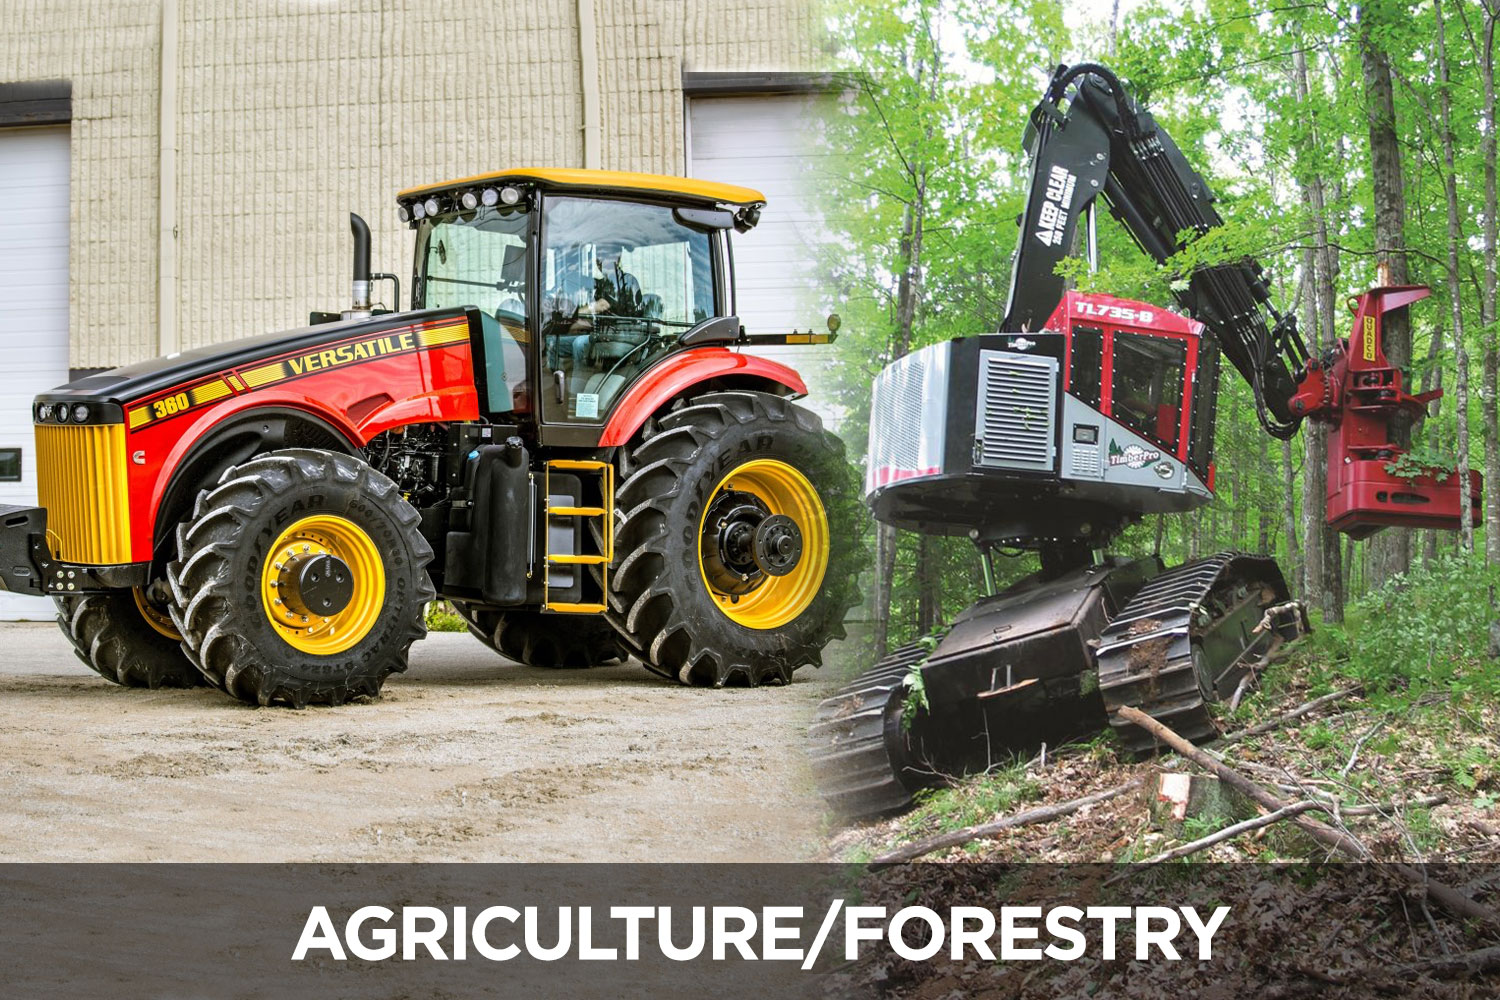 Agriculture/Forestry